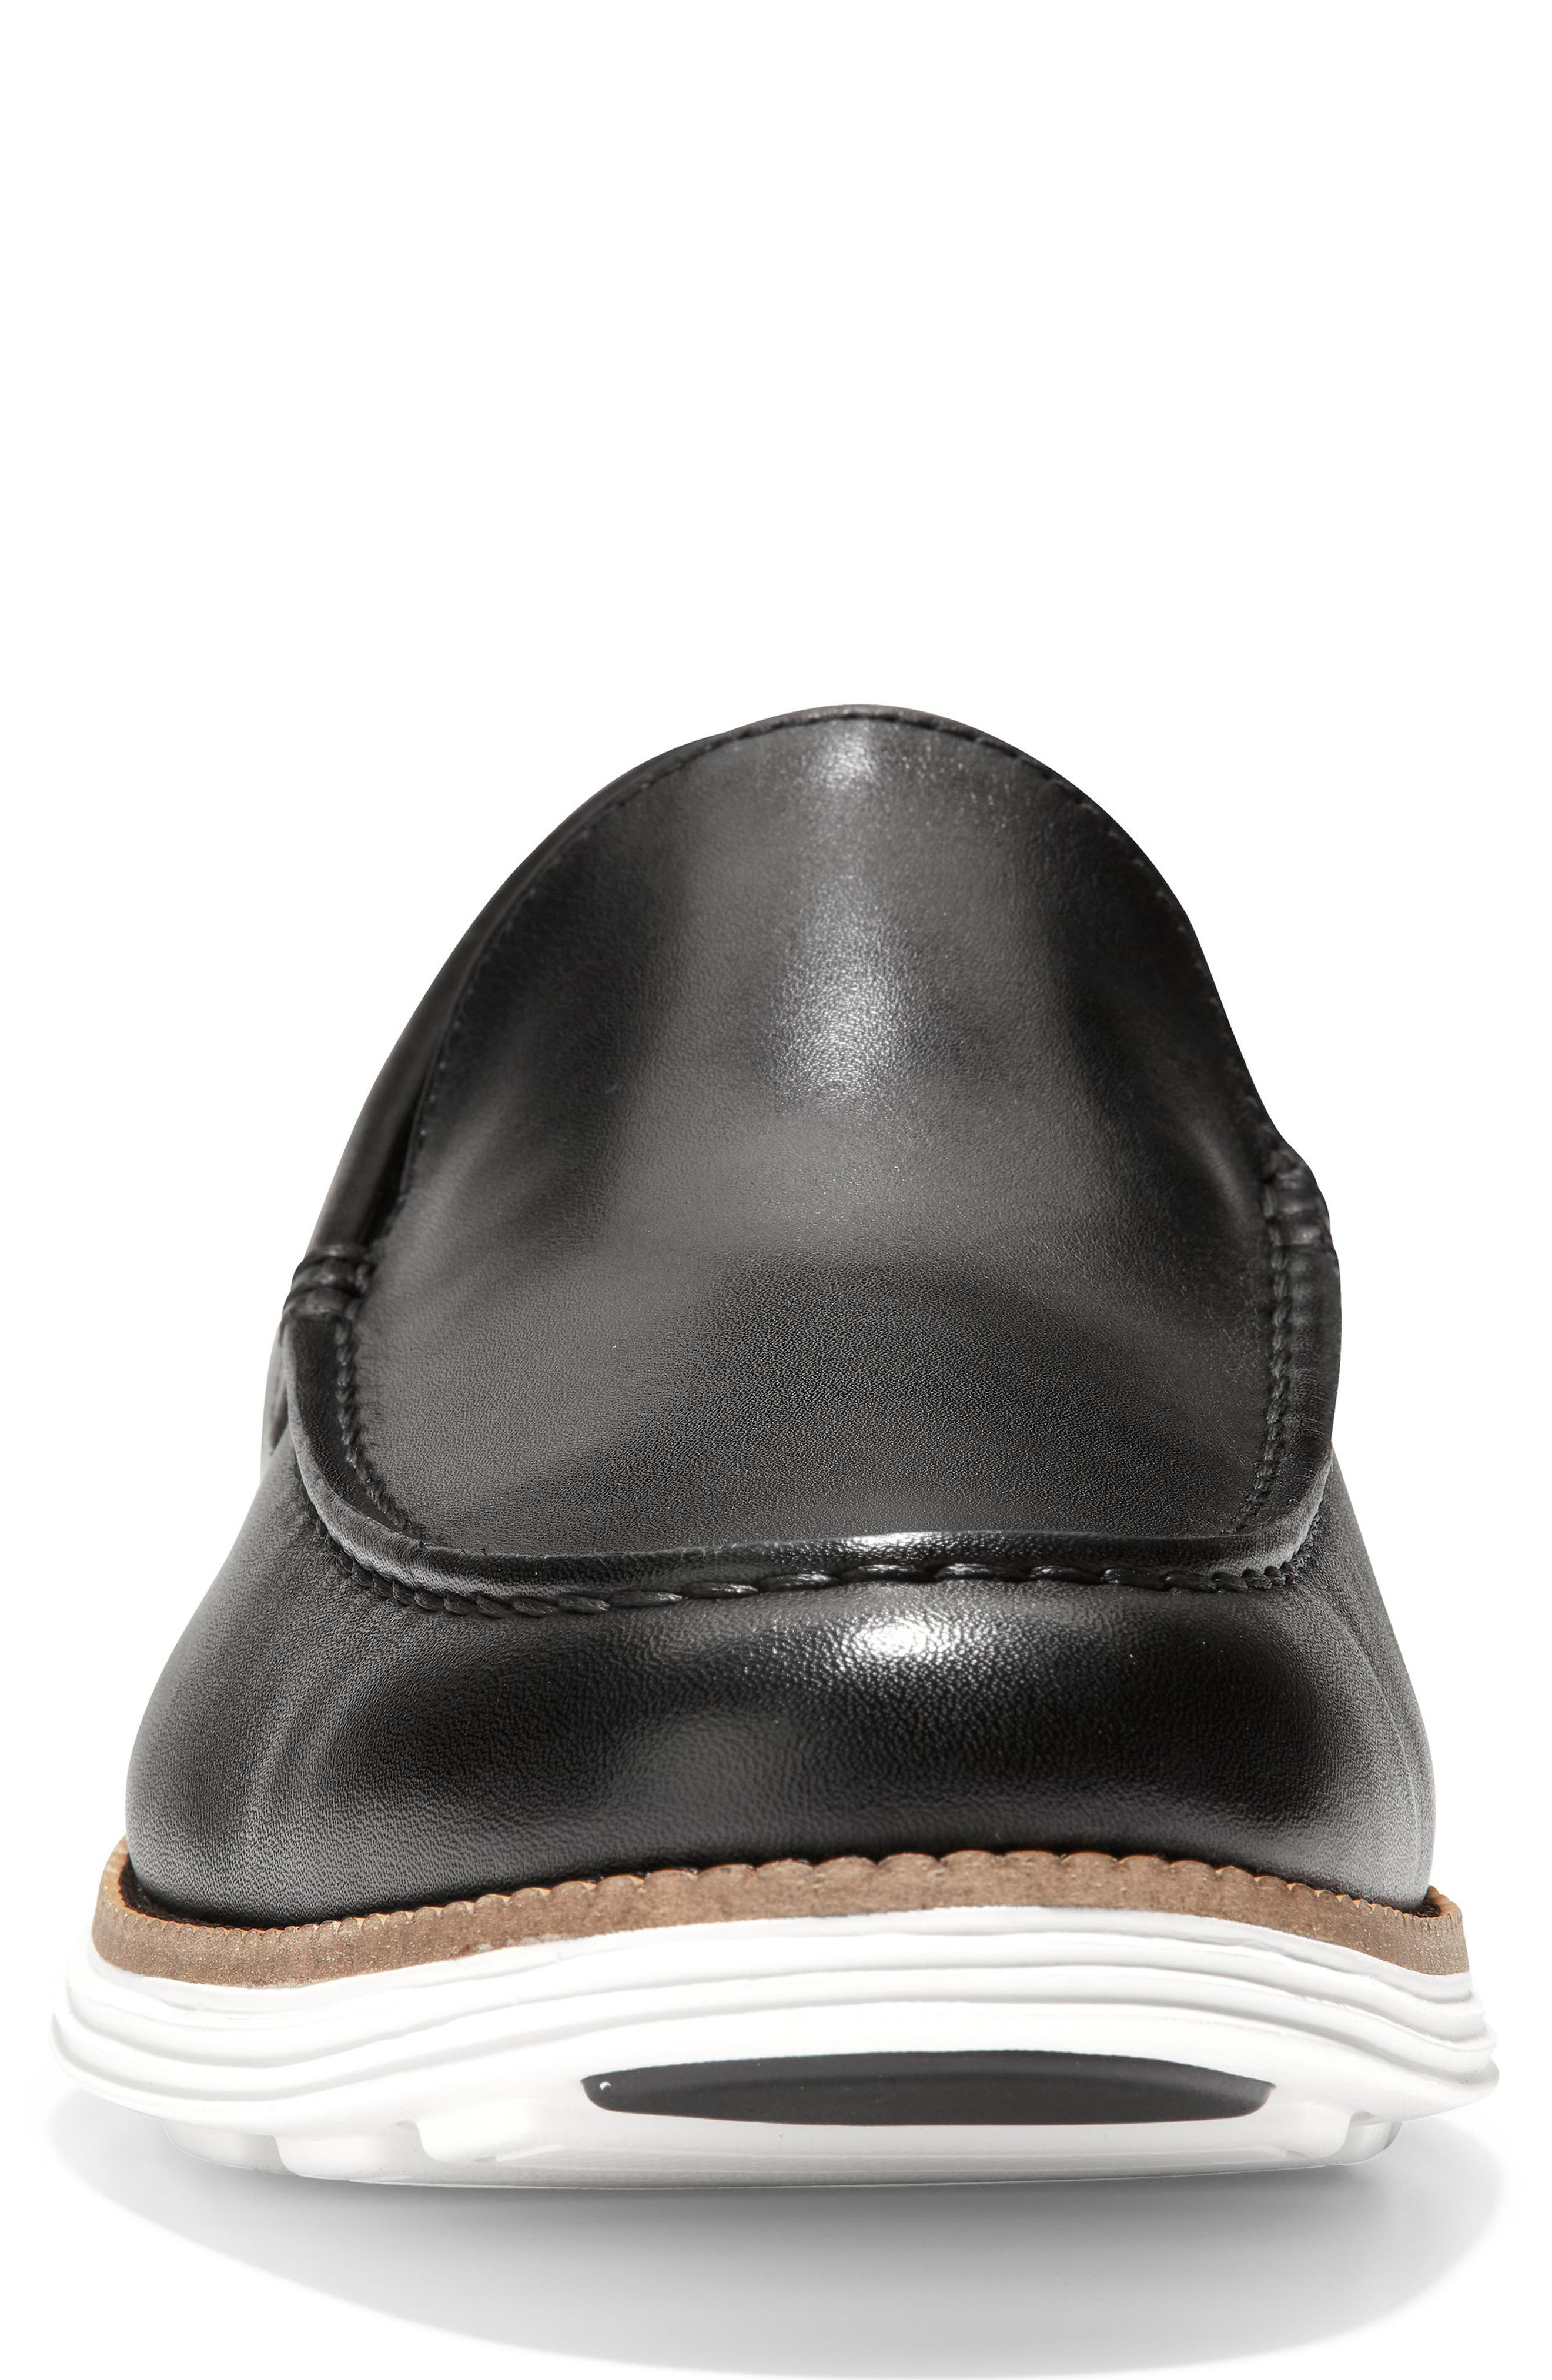 COLE HAAN, Original Grand Loafer, Alternate thumbnail 4, color, BLACK/ OPTIC WHITE LEATHER